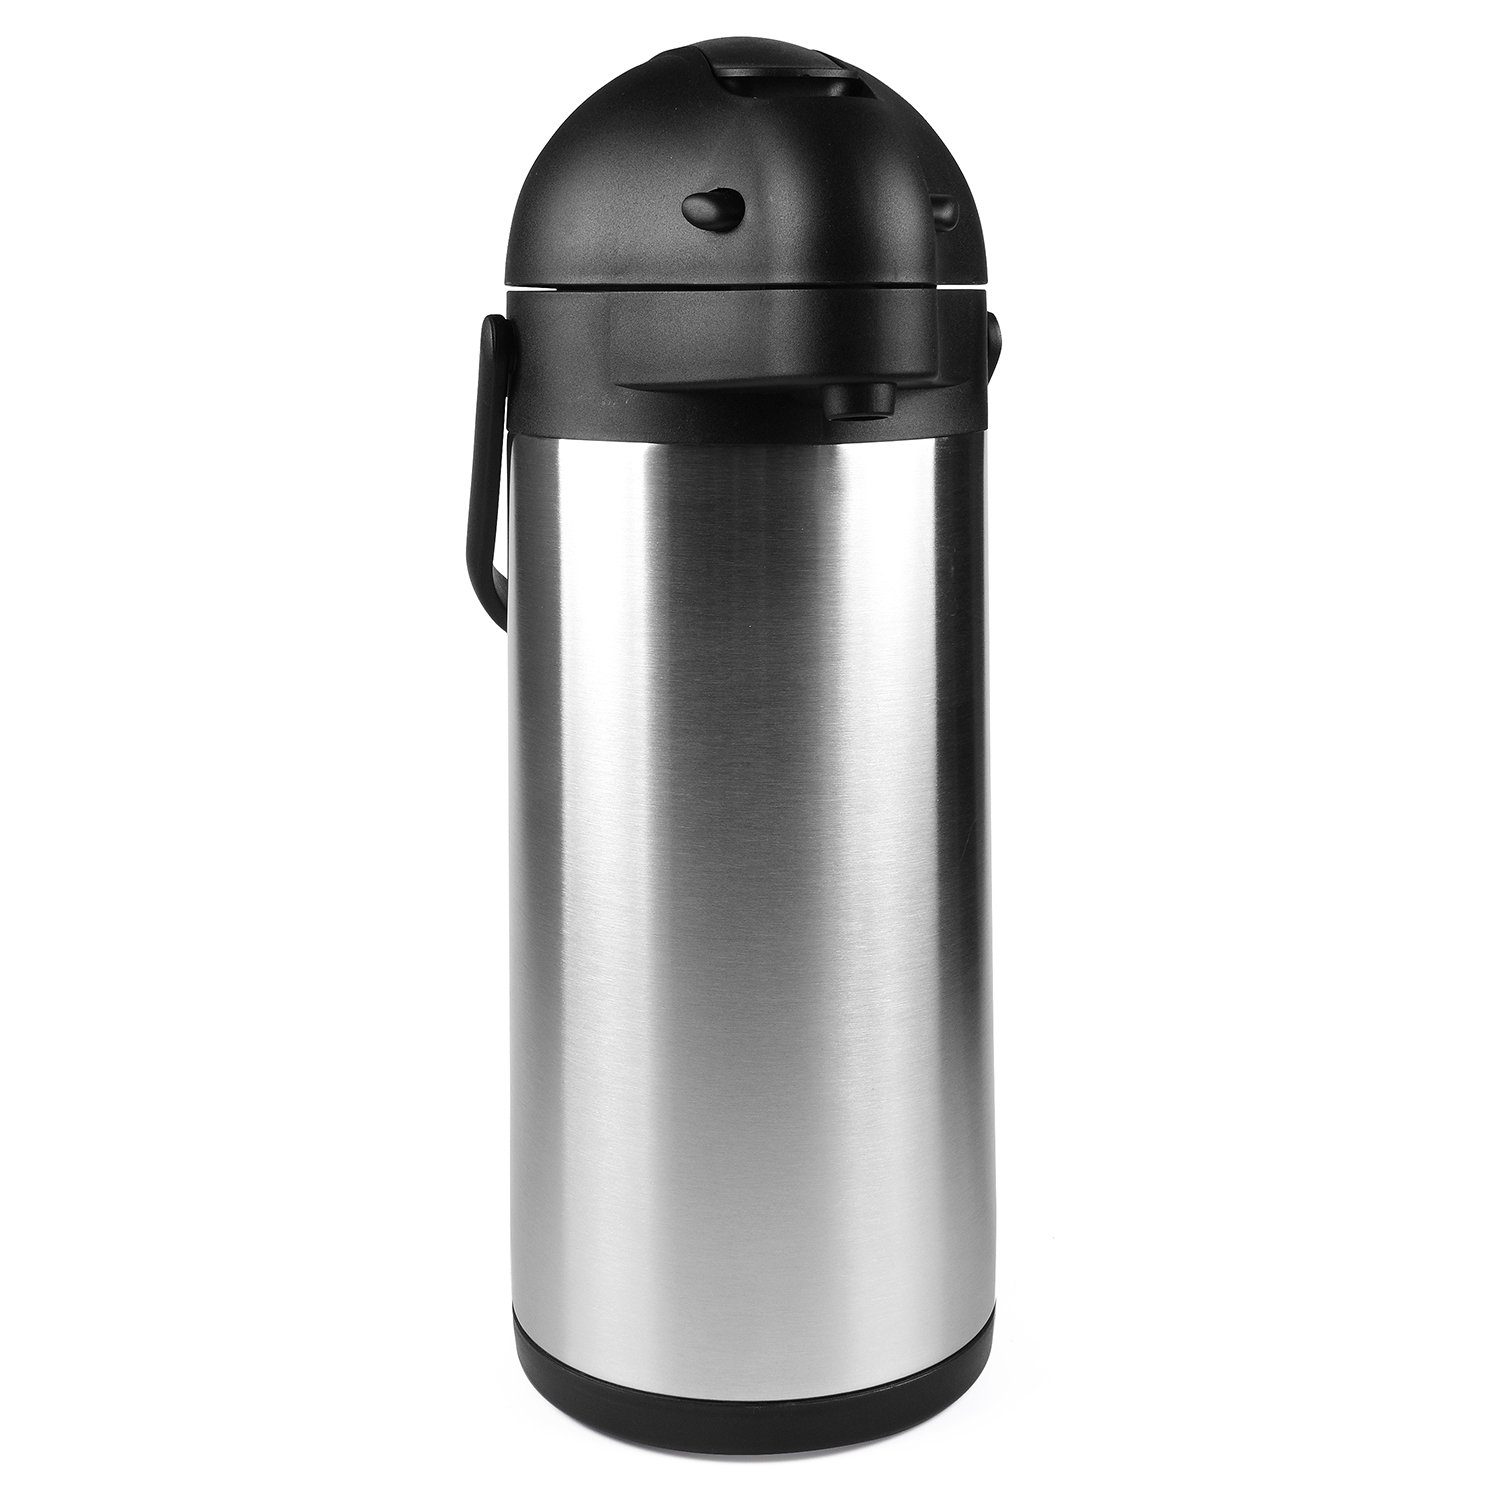 102 Oz (3L) Airpot Thermal Carafe/Lever Action/Stainless Steel Thermos / 12 Hour Heat Retention / 24 Hour Cold Retention by Cresimo by Cresimo